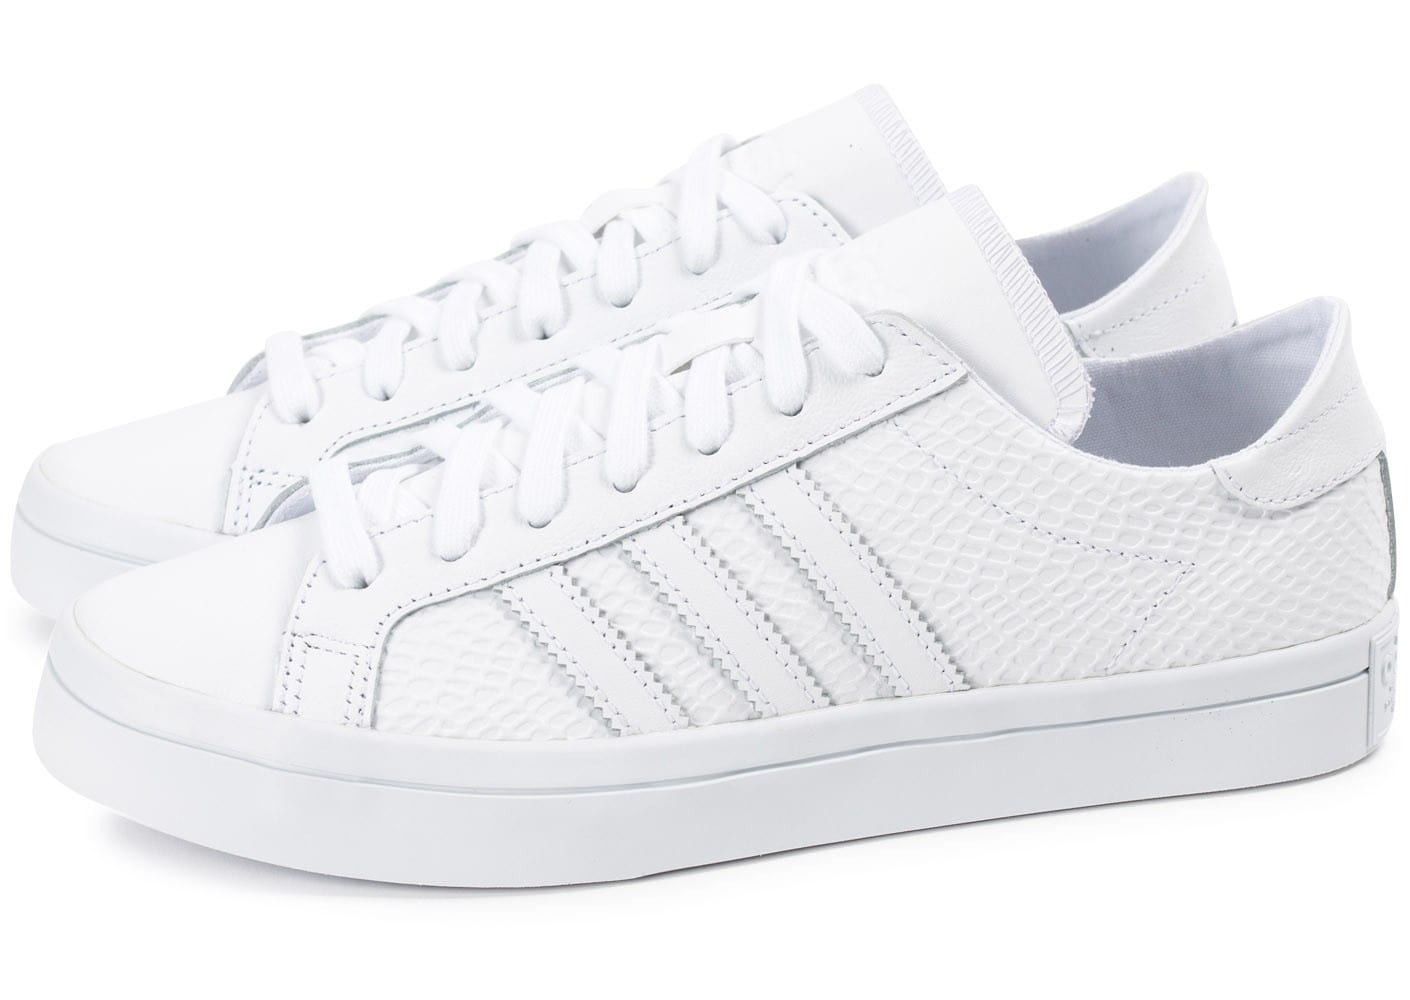 adidas Court Vantage Snake blanche - Chaussures adidas ...